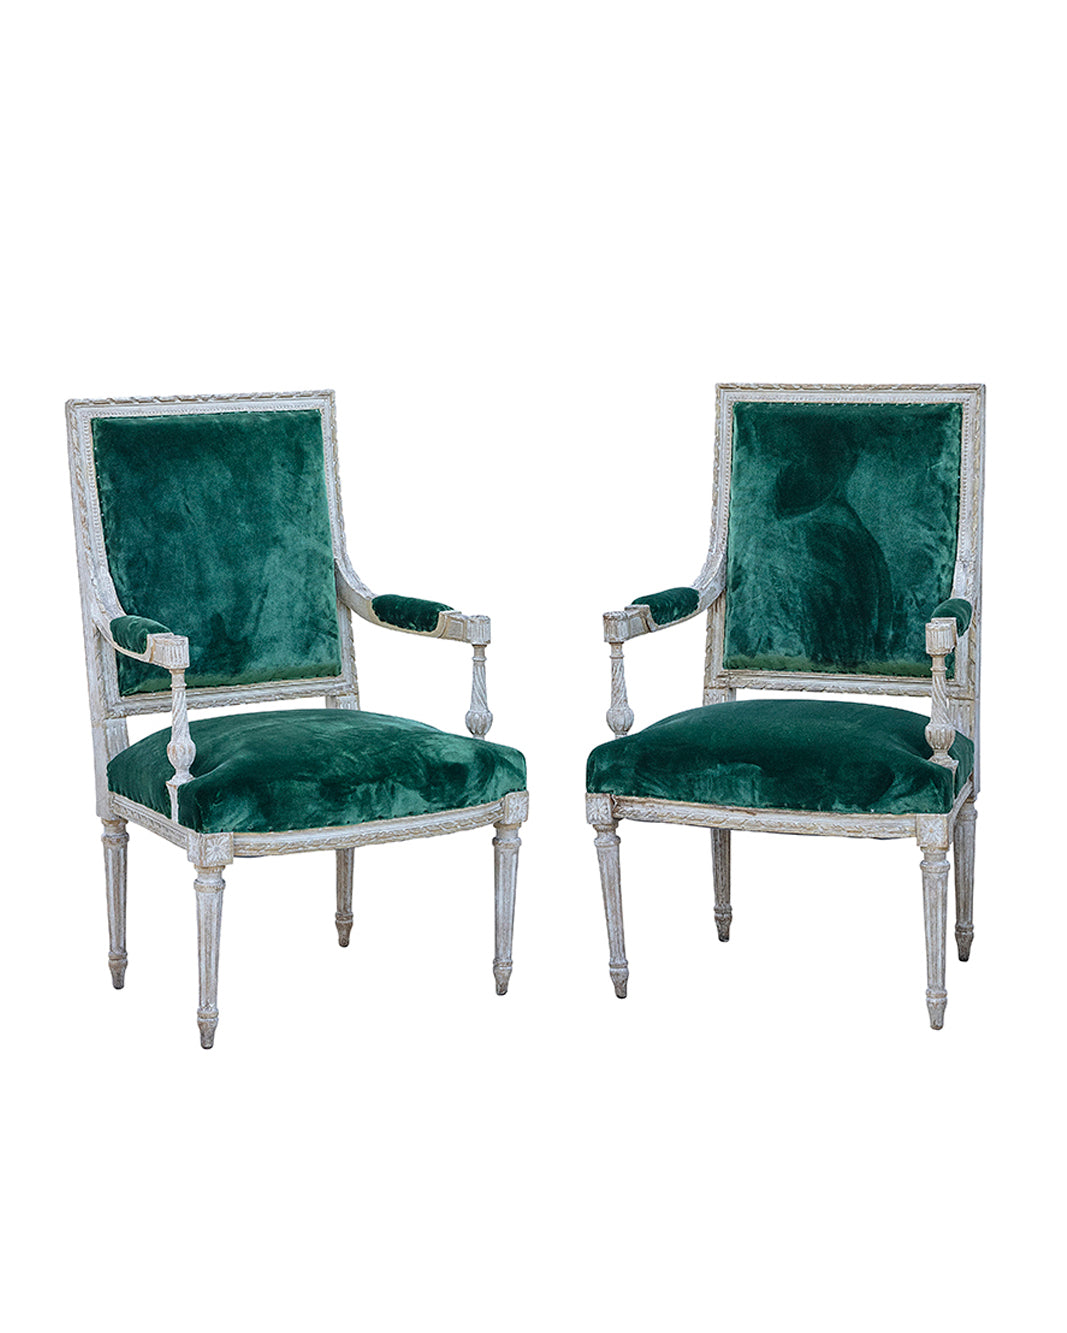 Pair of armchairs from the beginning of the directoire style. France 19th century